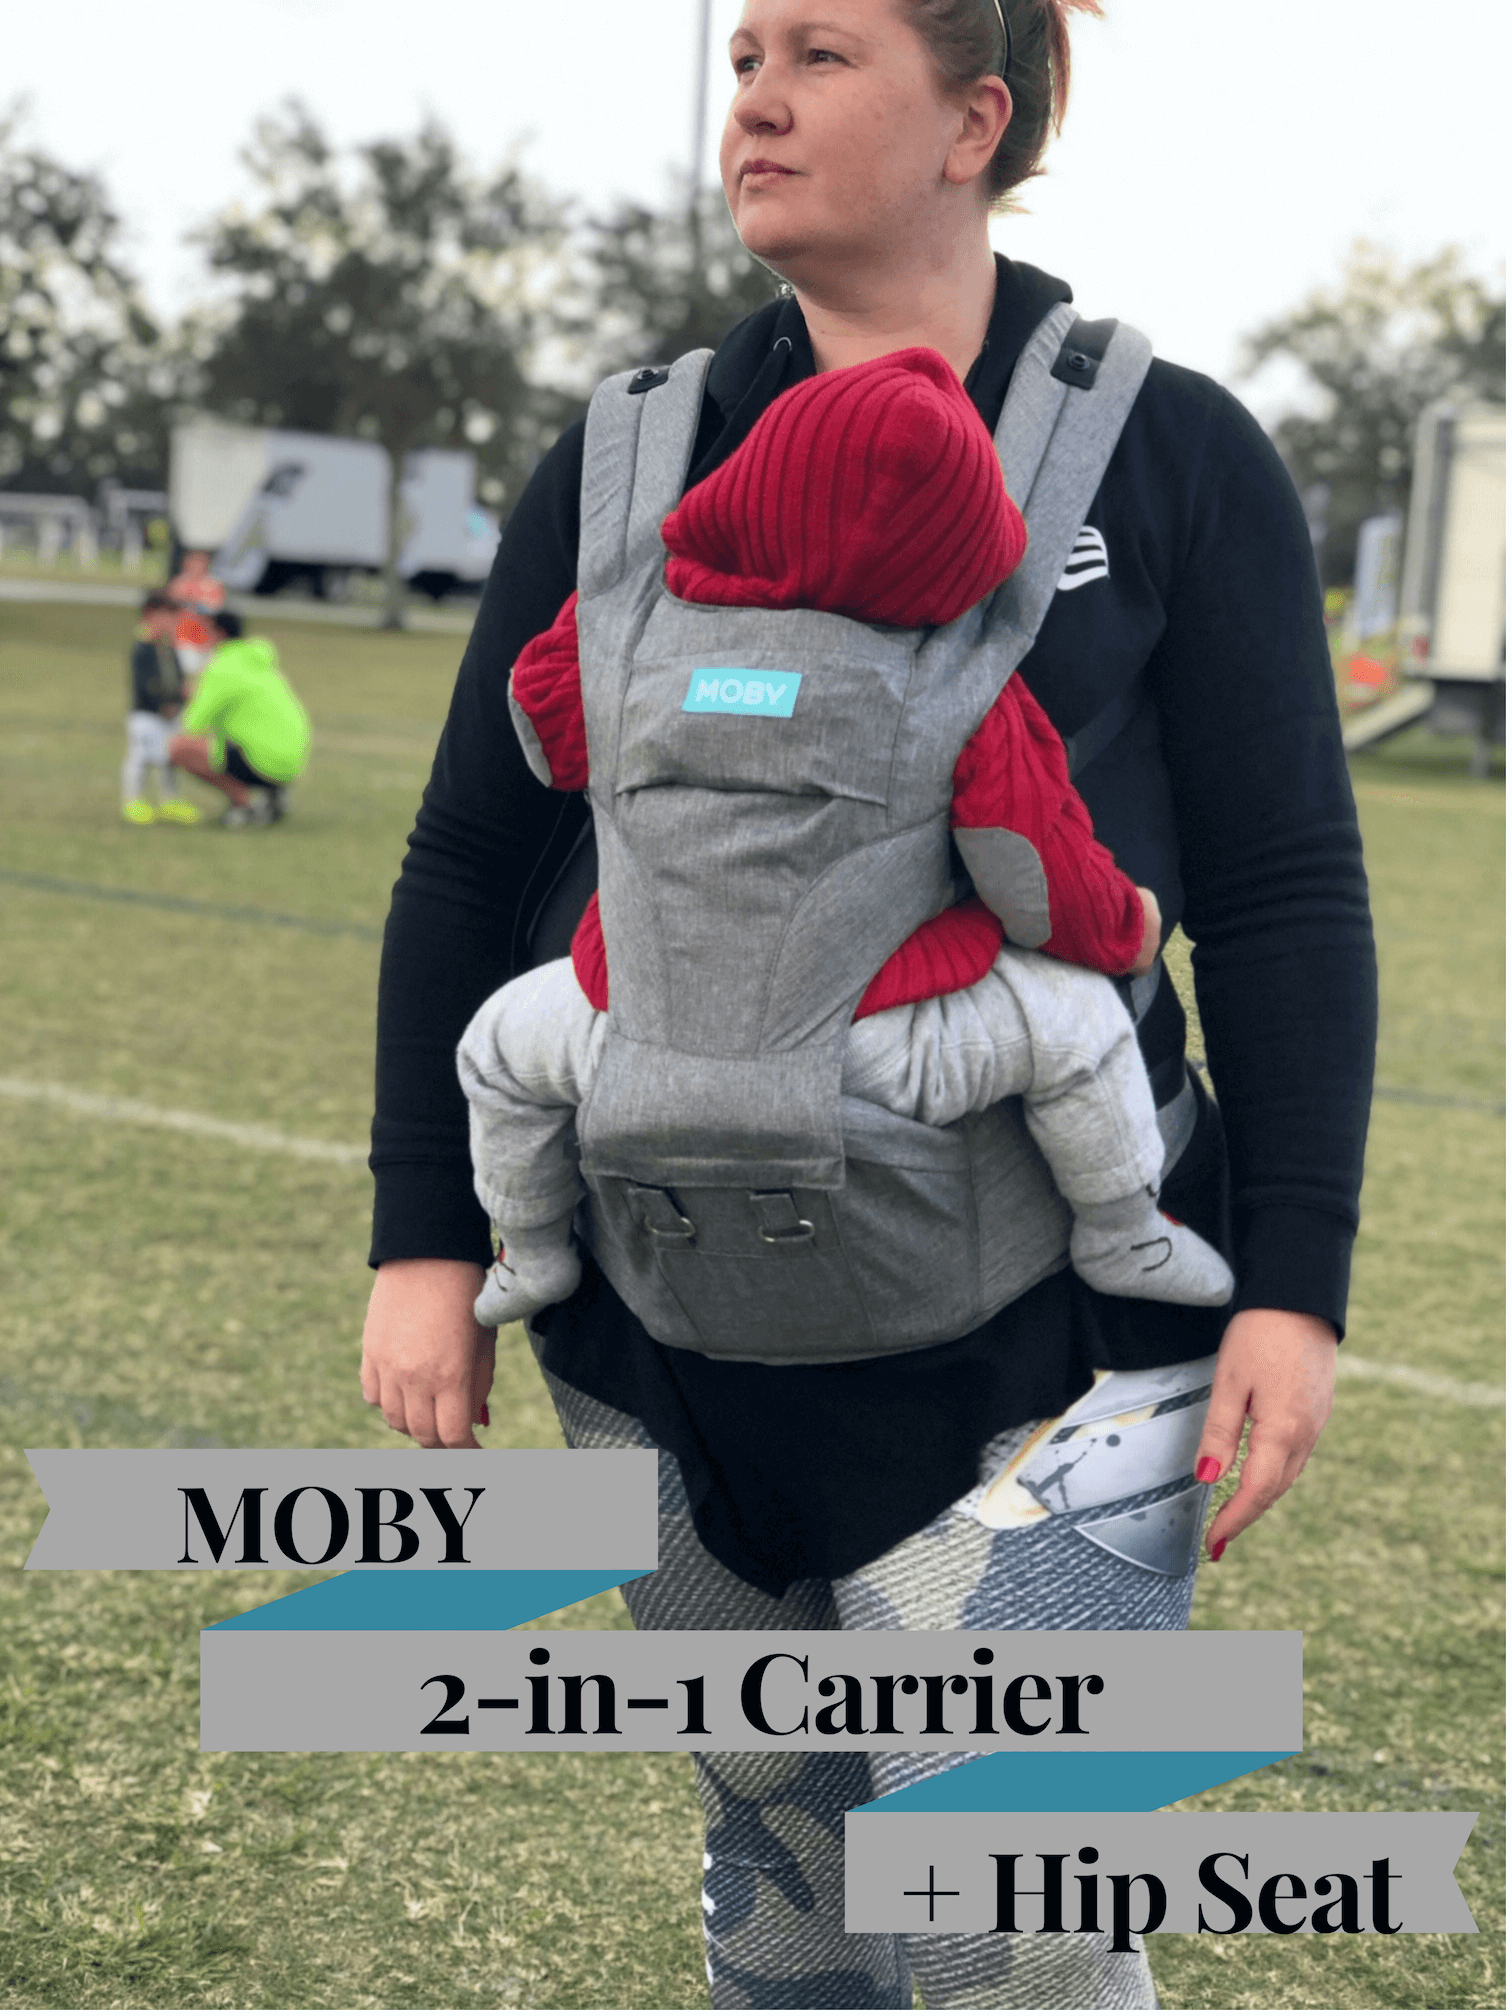 MOBY 2-in-1 Carrier + Hip Seat 1